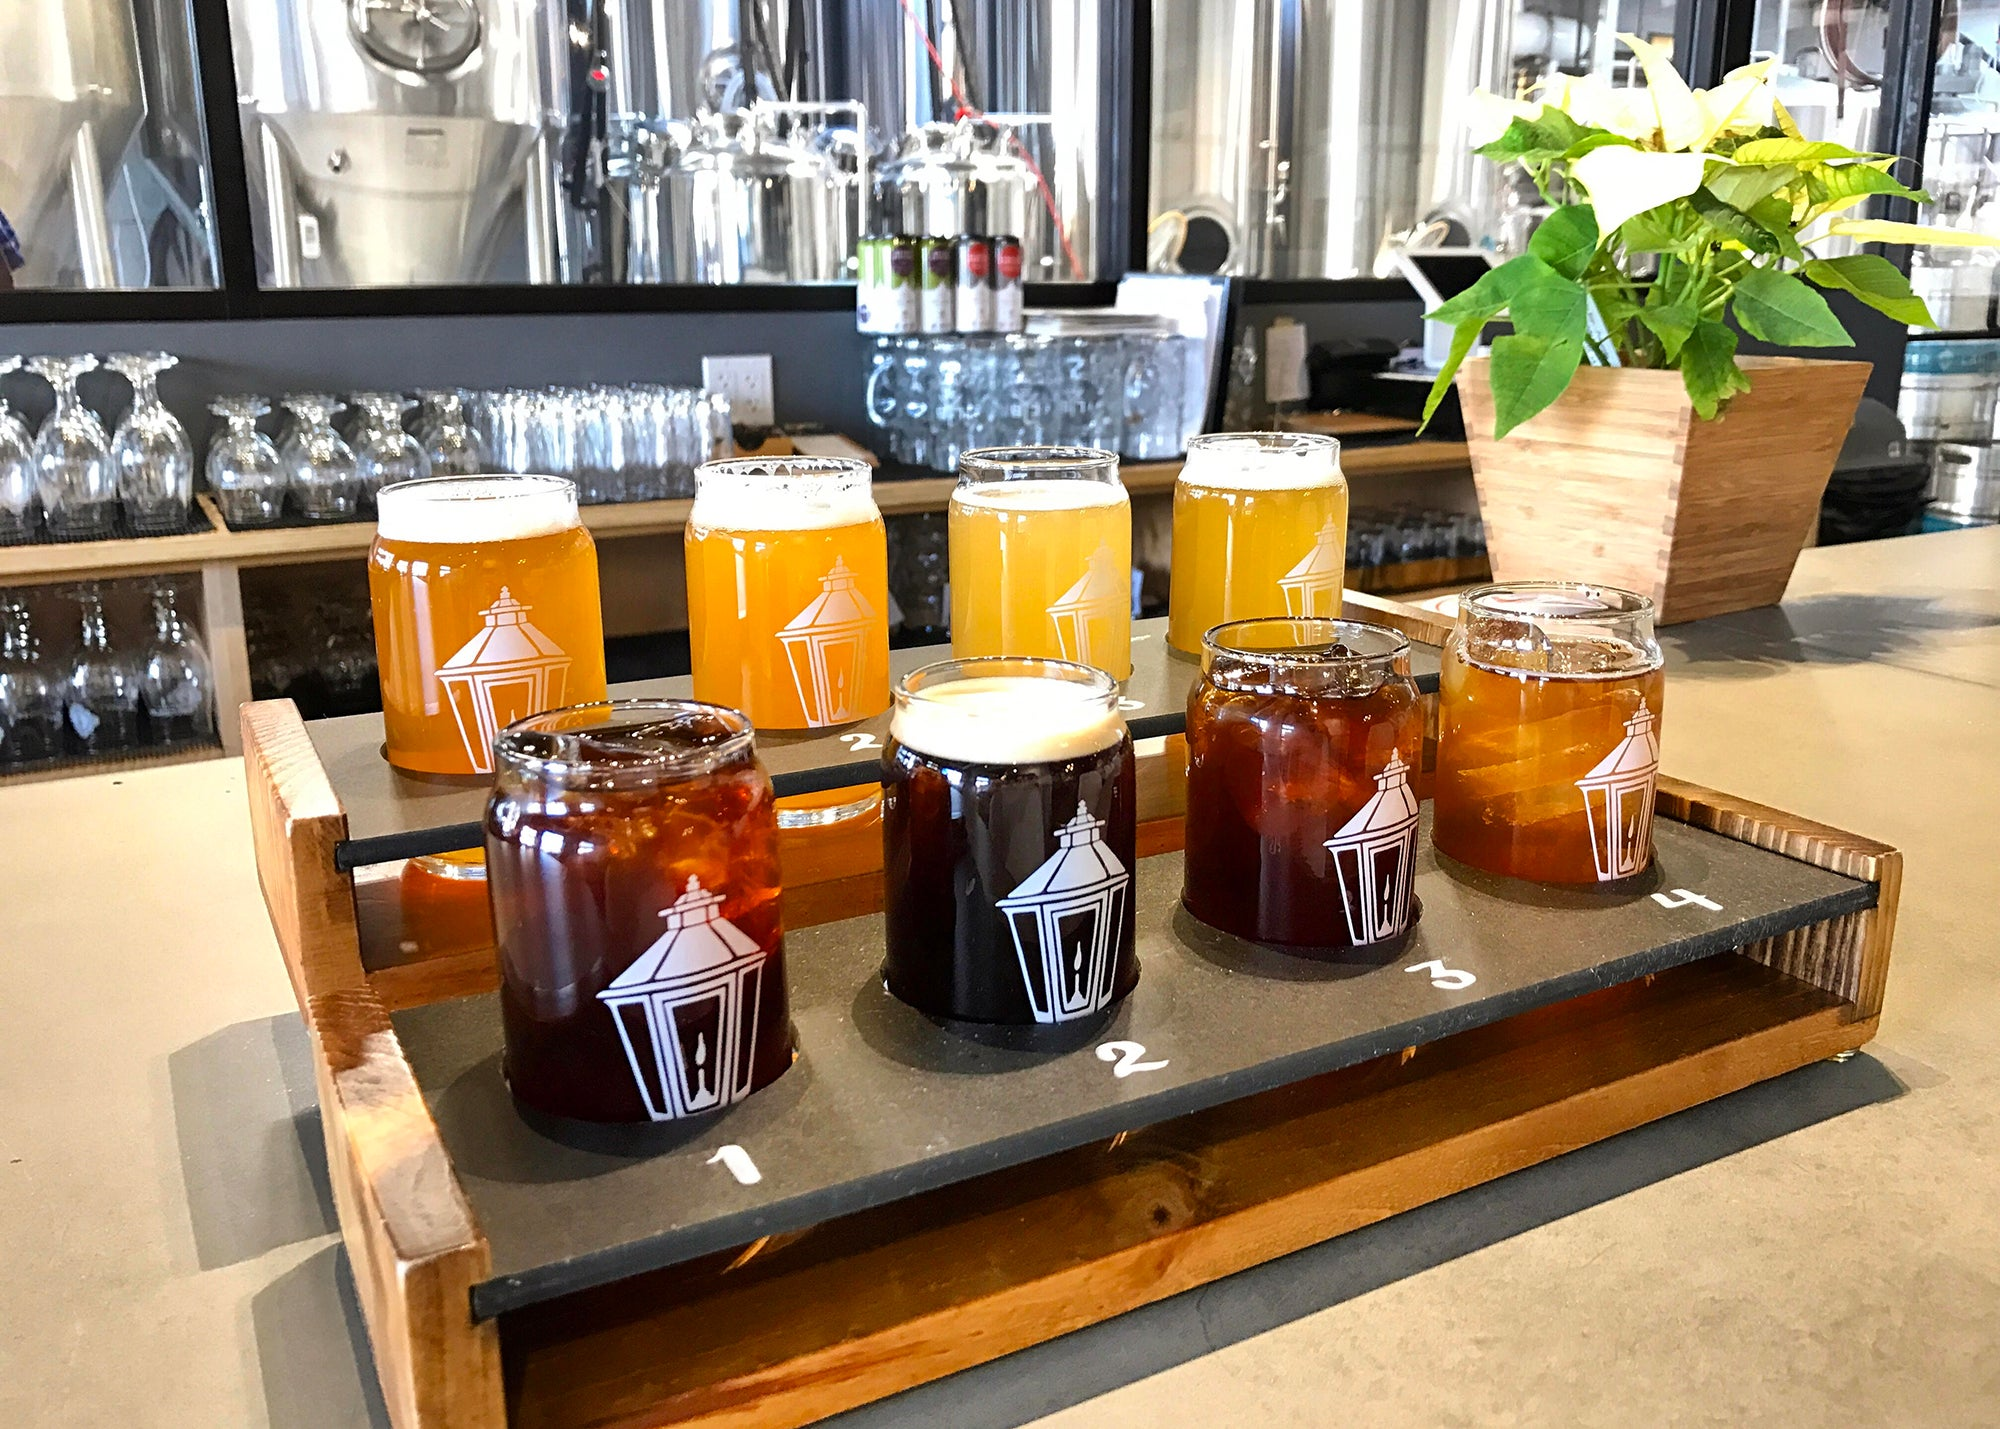 A flight of beer and coffee at Lamplighter Brewing Co.